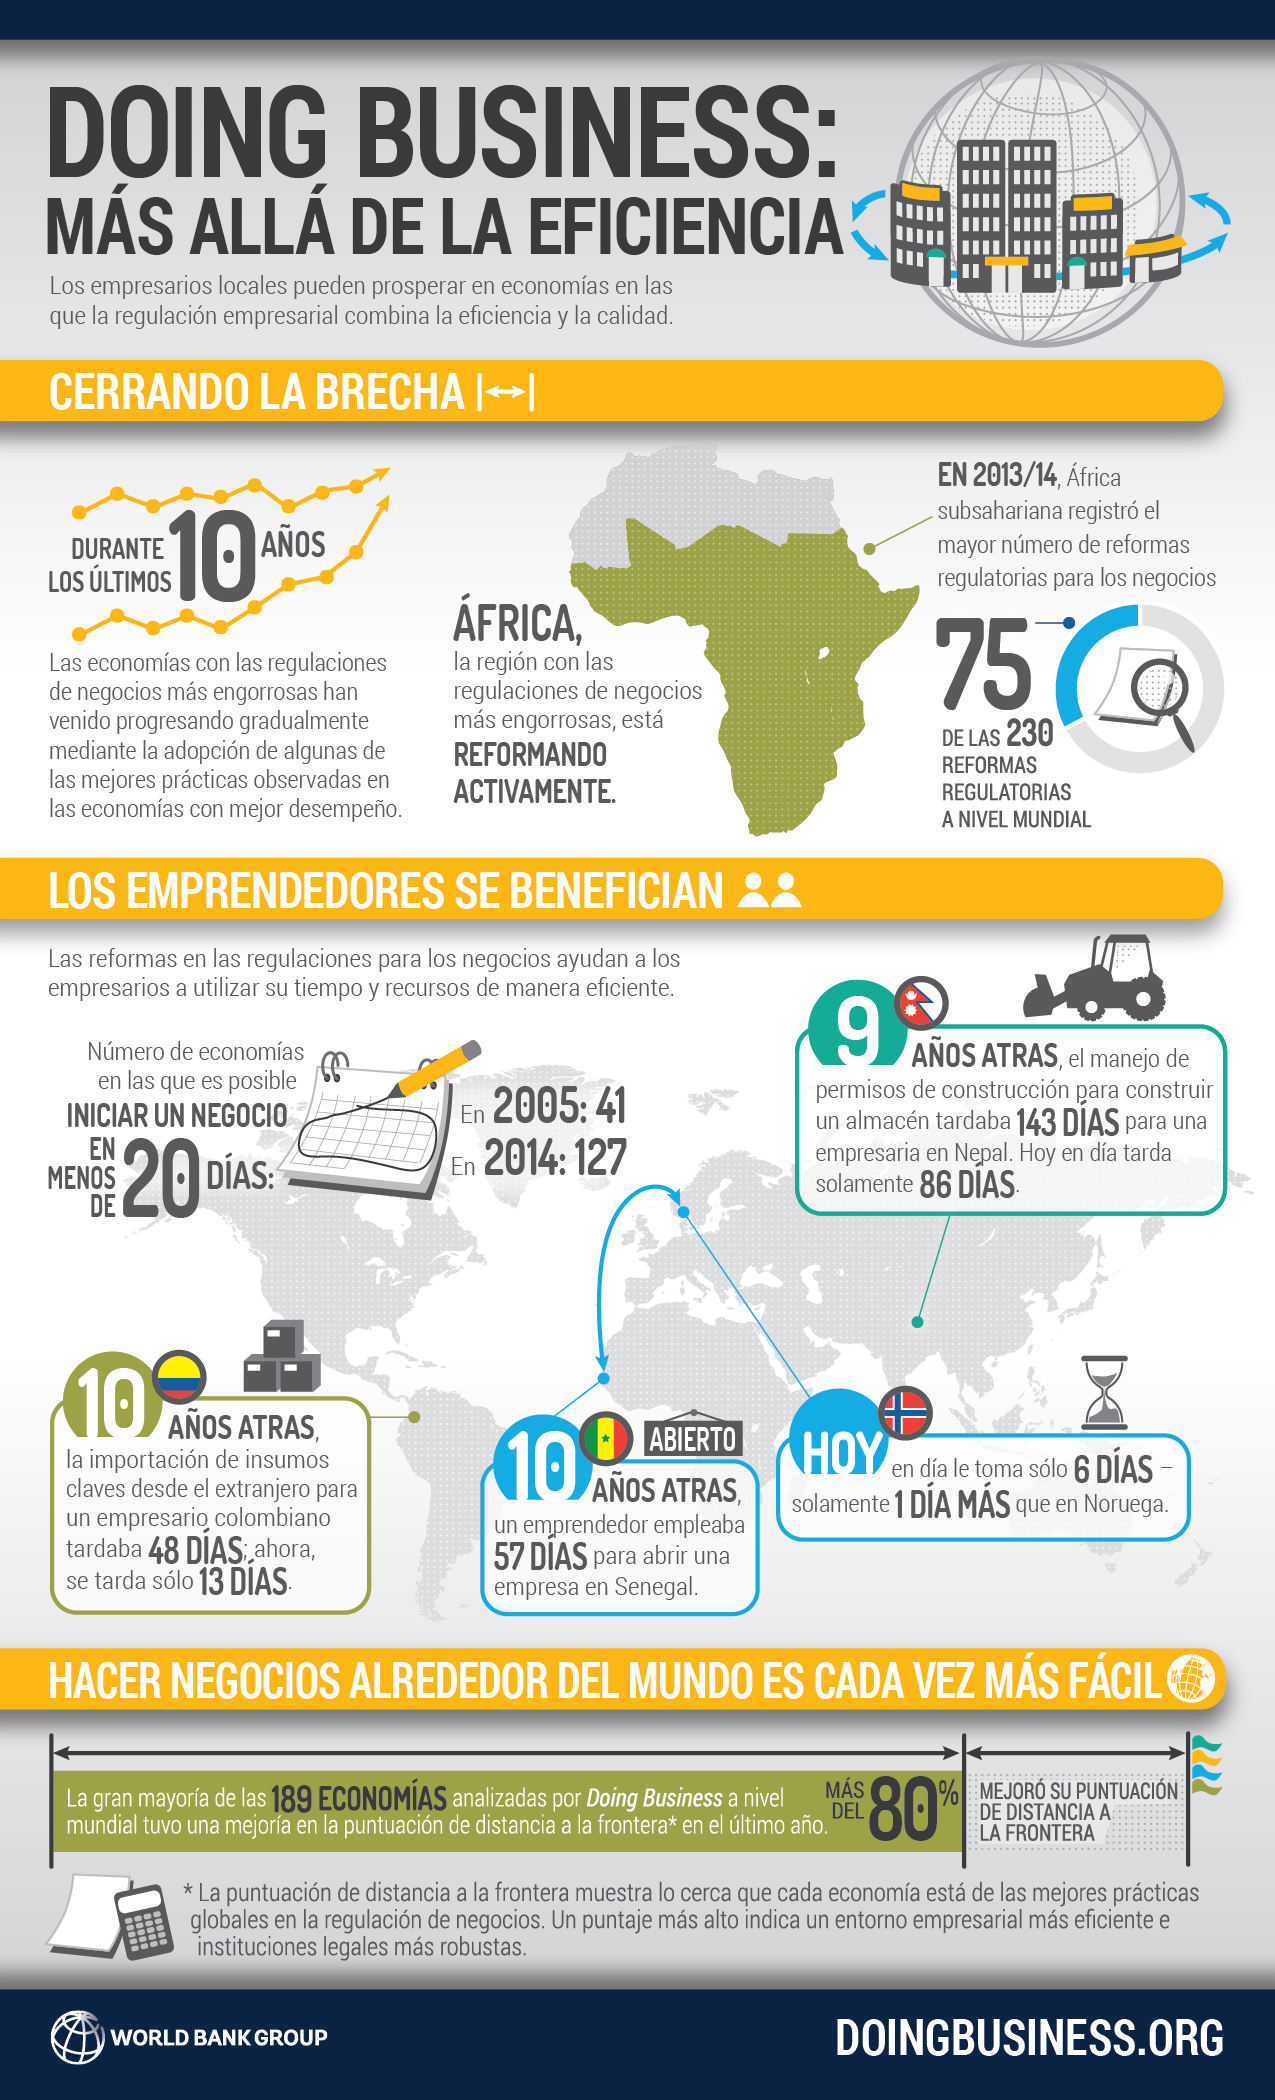 http://www.worldbank.org/content/dam/Worldbank/doing-business-fy14-spanish.jpg